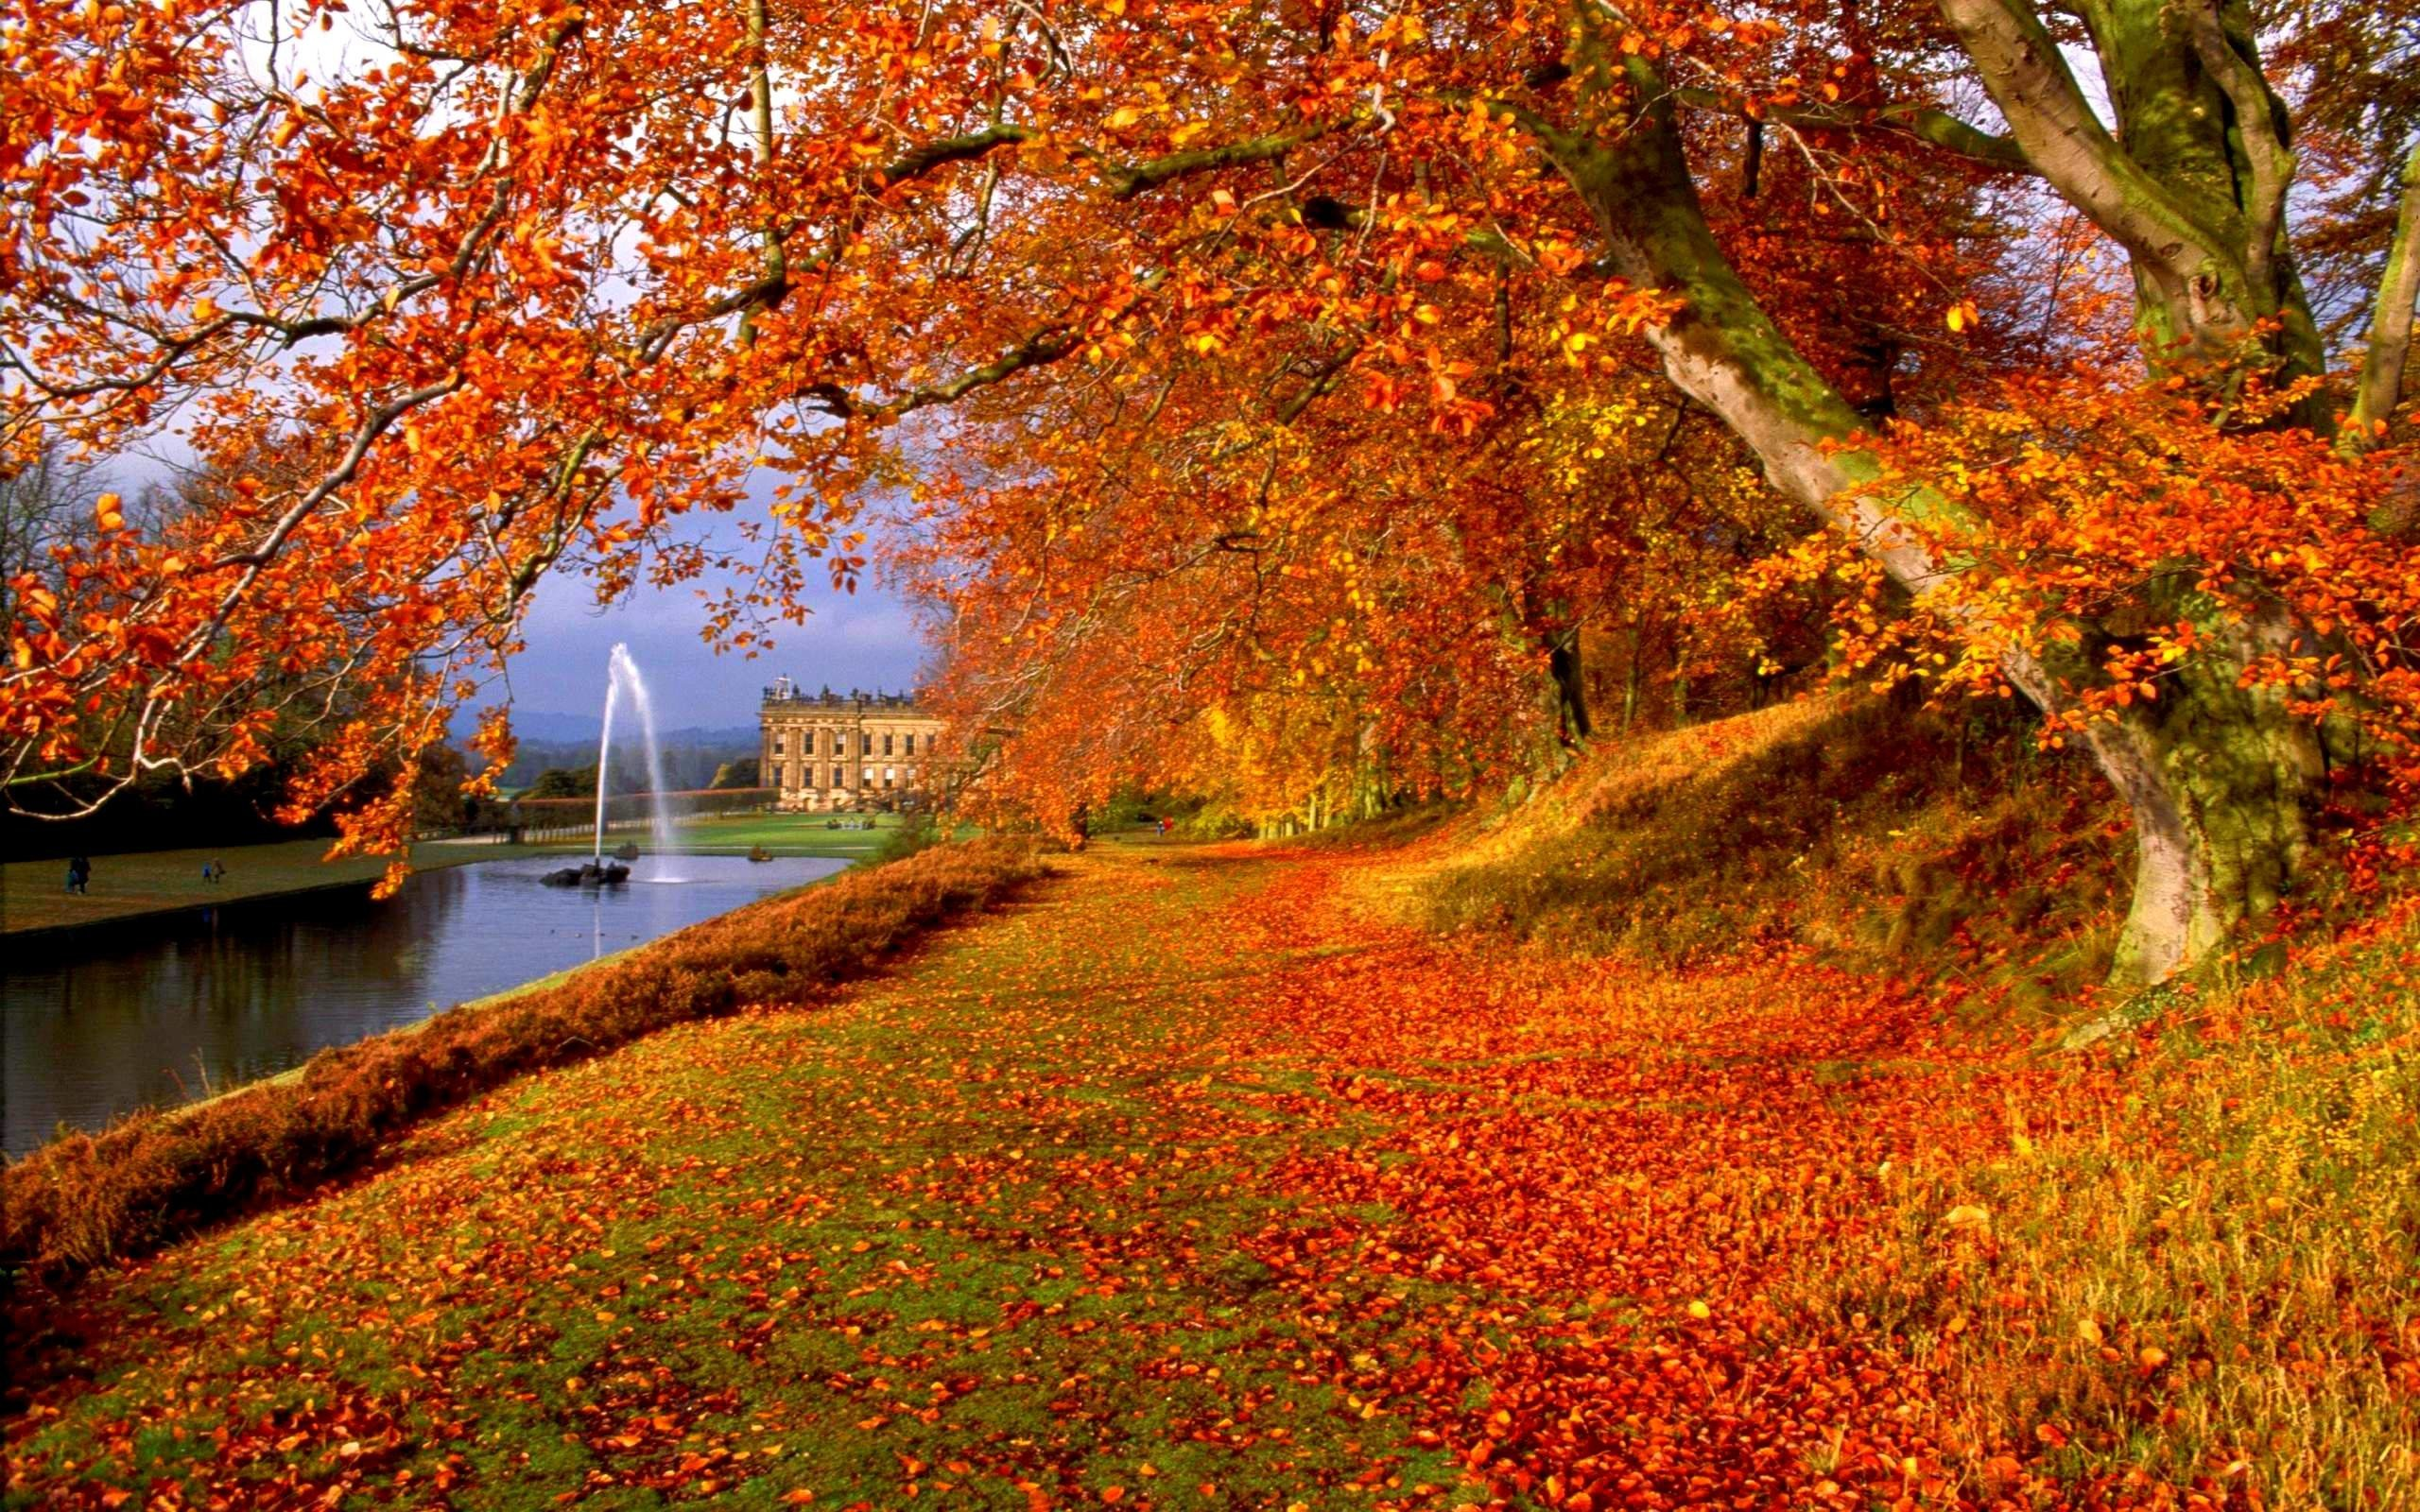 Fall Scenes Wallpaper and Screensavers 58 images 2560x1600